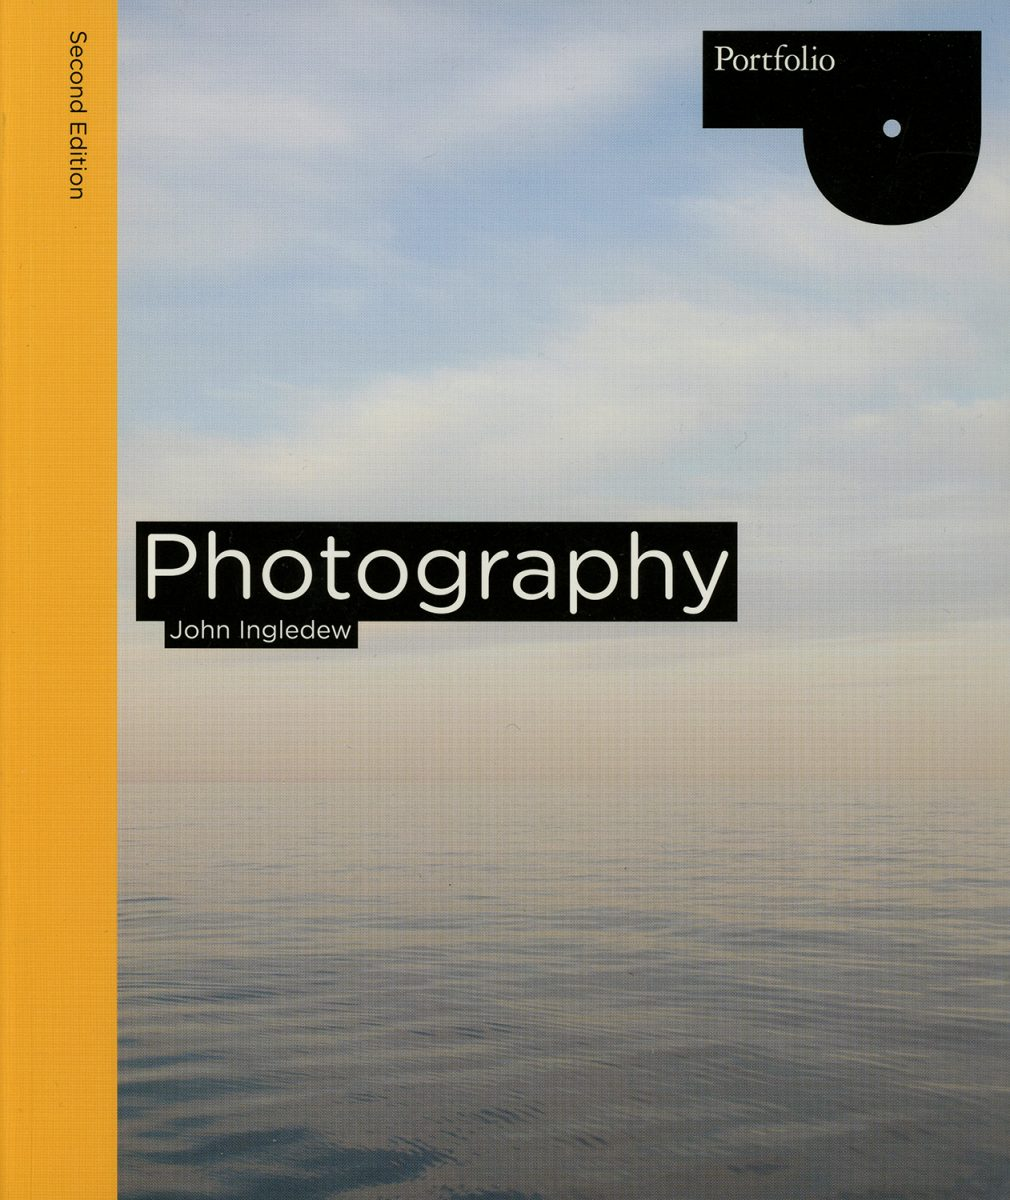 Photography (Second edition) by John Ingledew